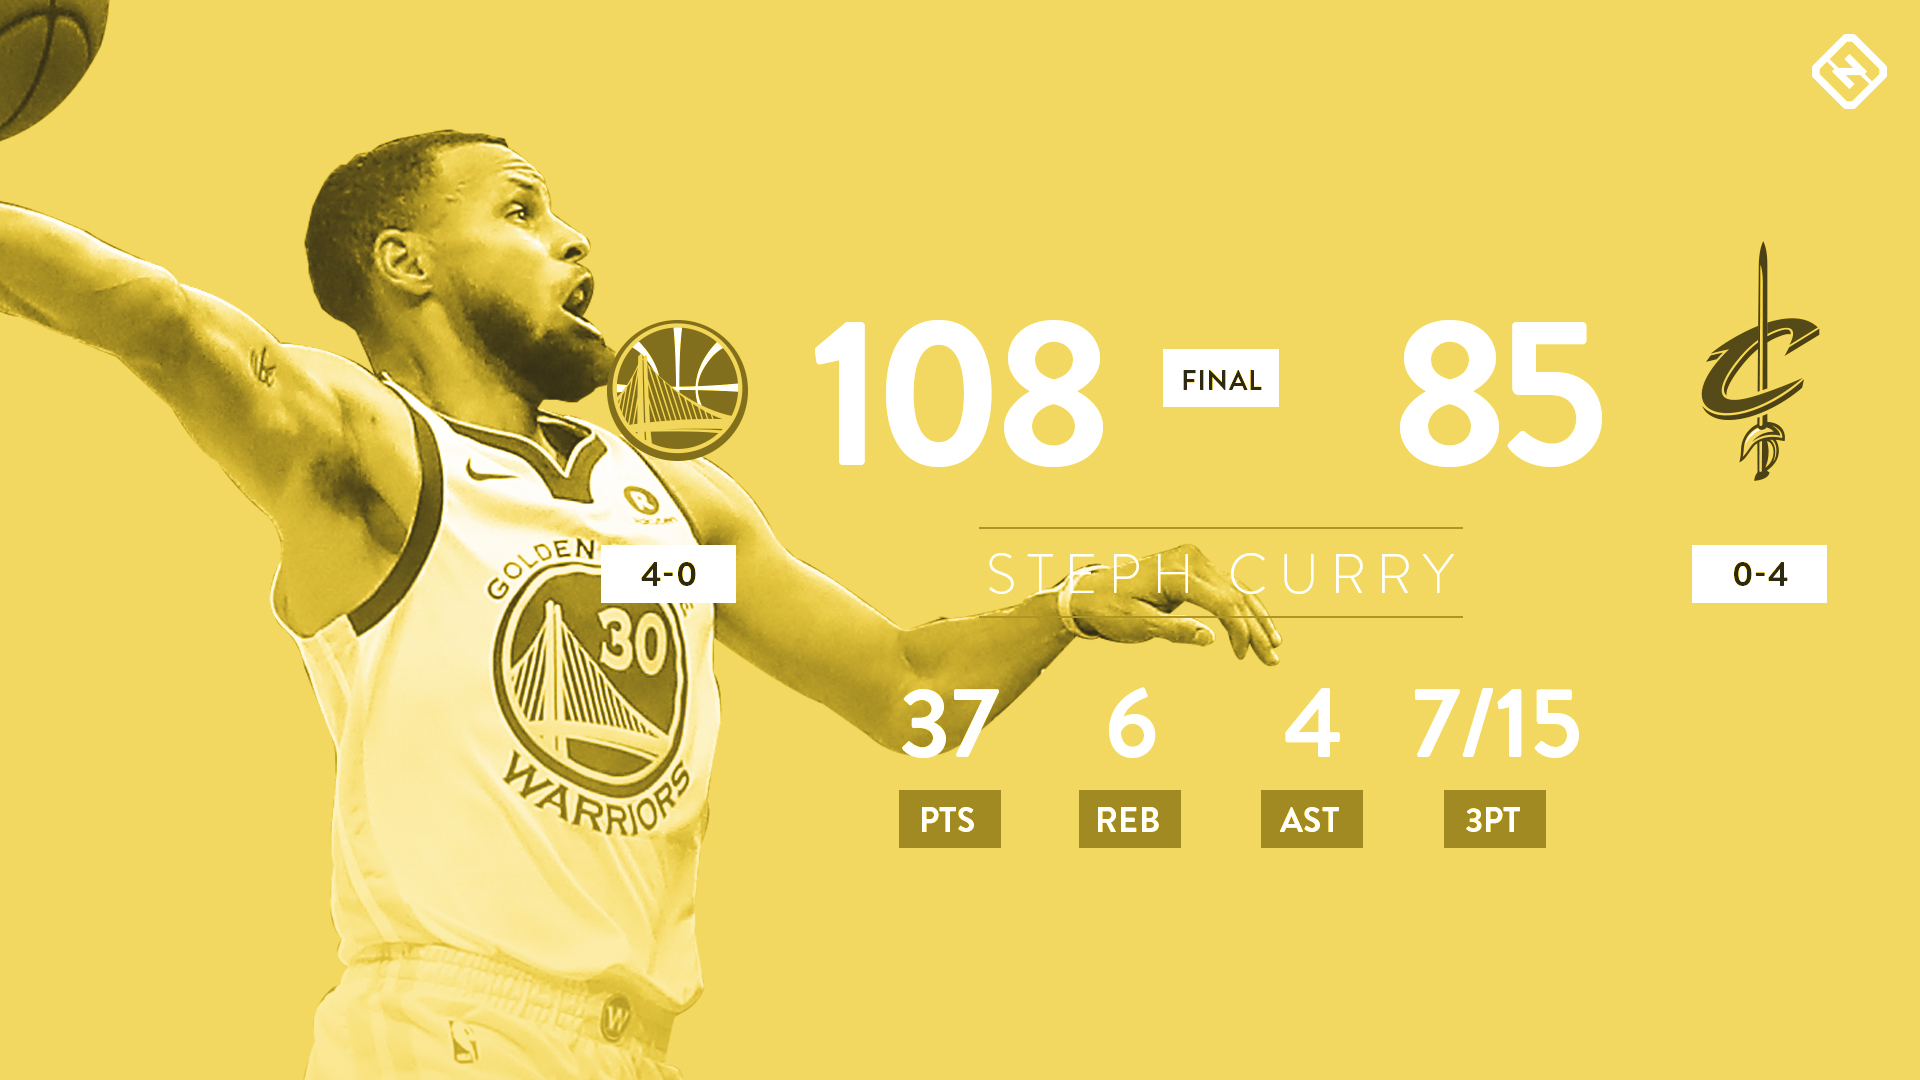 stephen-curry-game-4-stats-060918.jpg